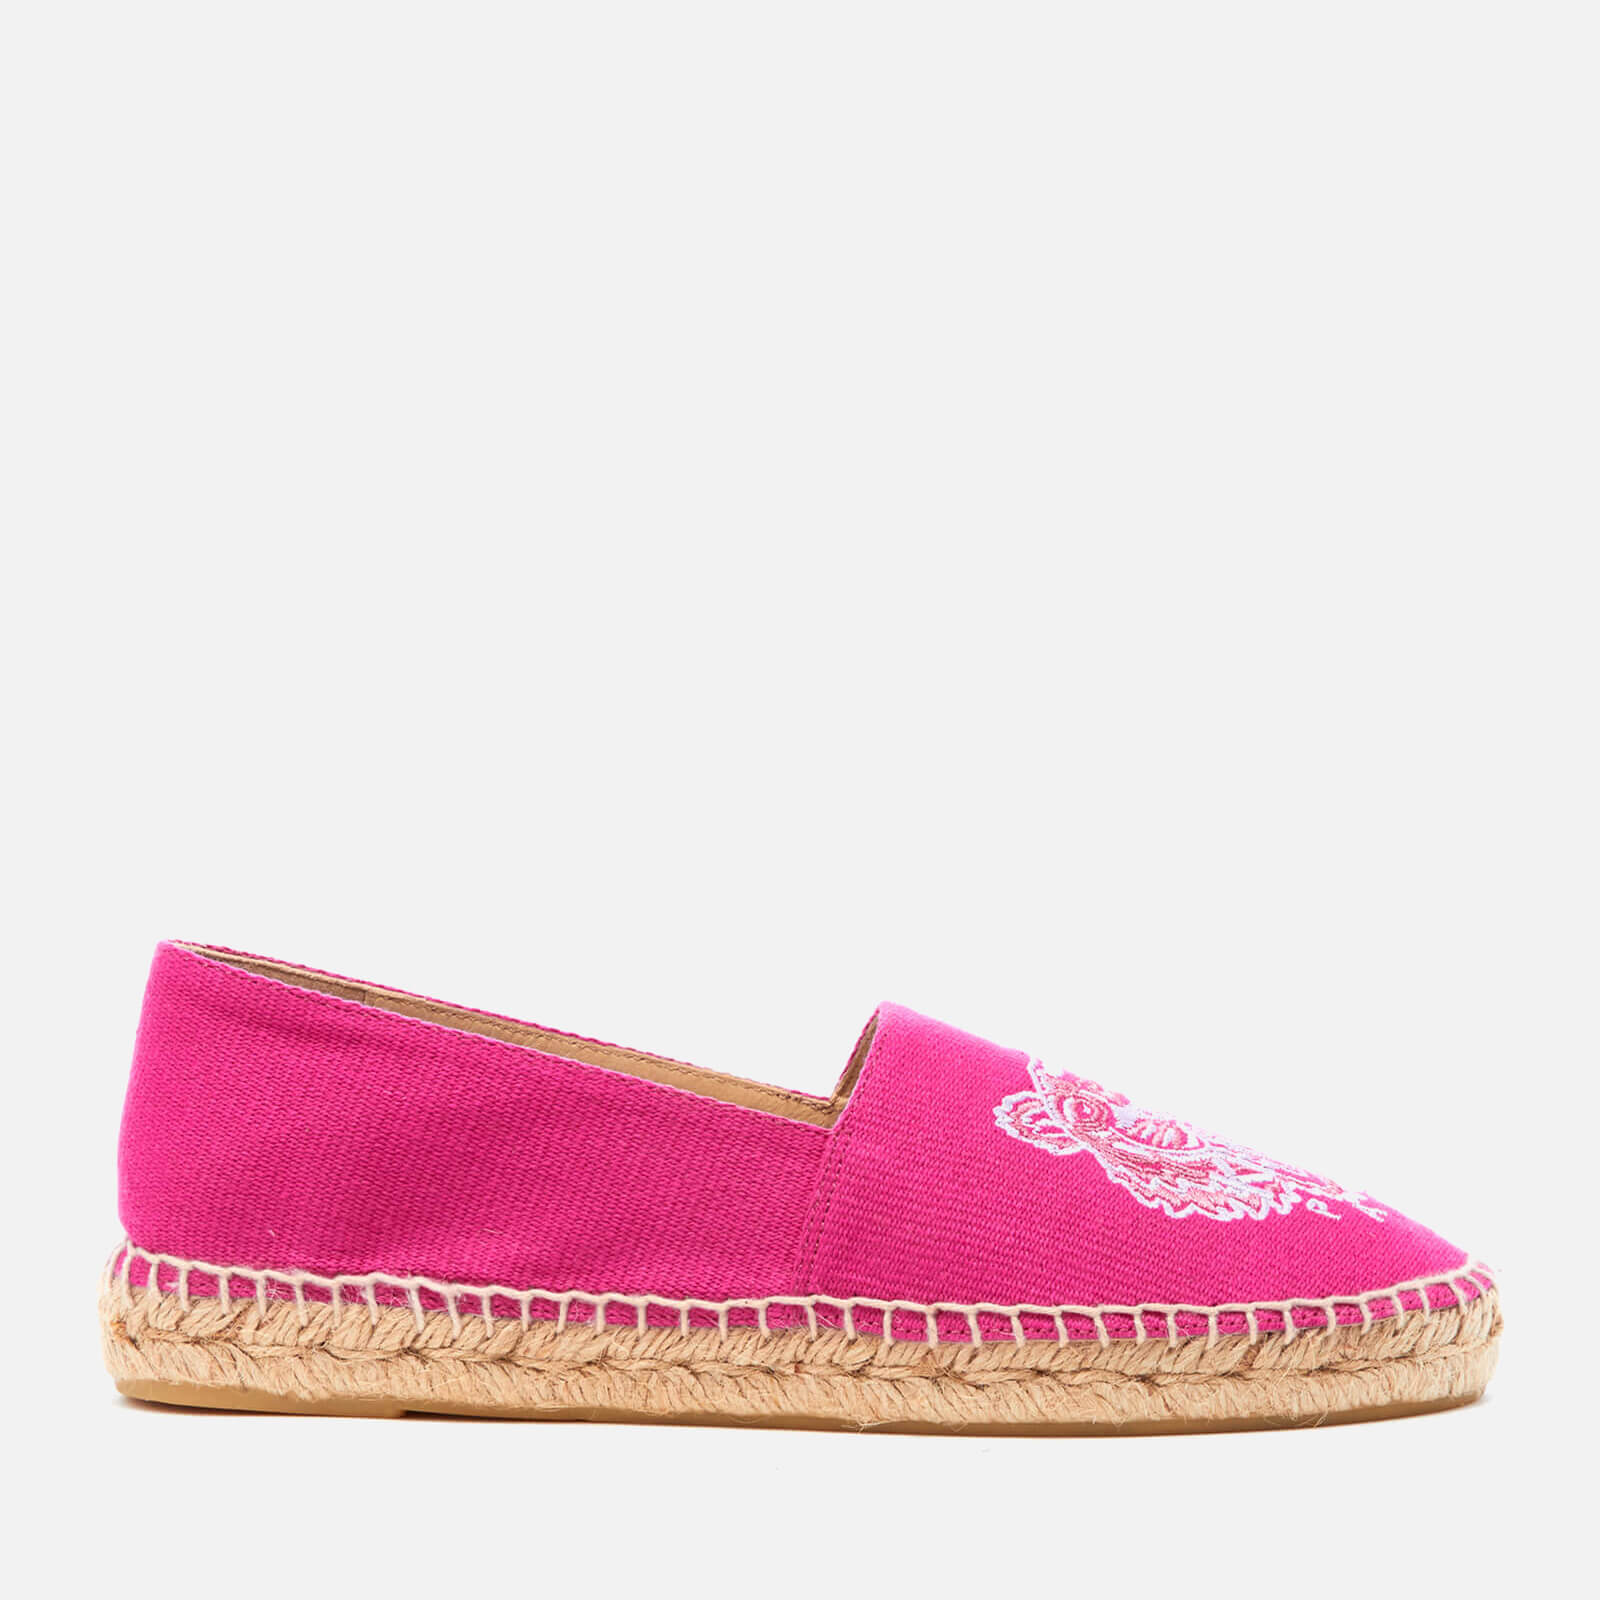 d970212de KENZO Women's Canvas Tiger Espadrilles - Deep Fuchsia - Free UK Delivery  over £50